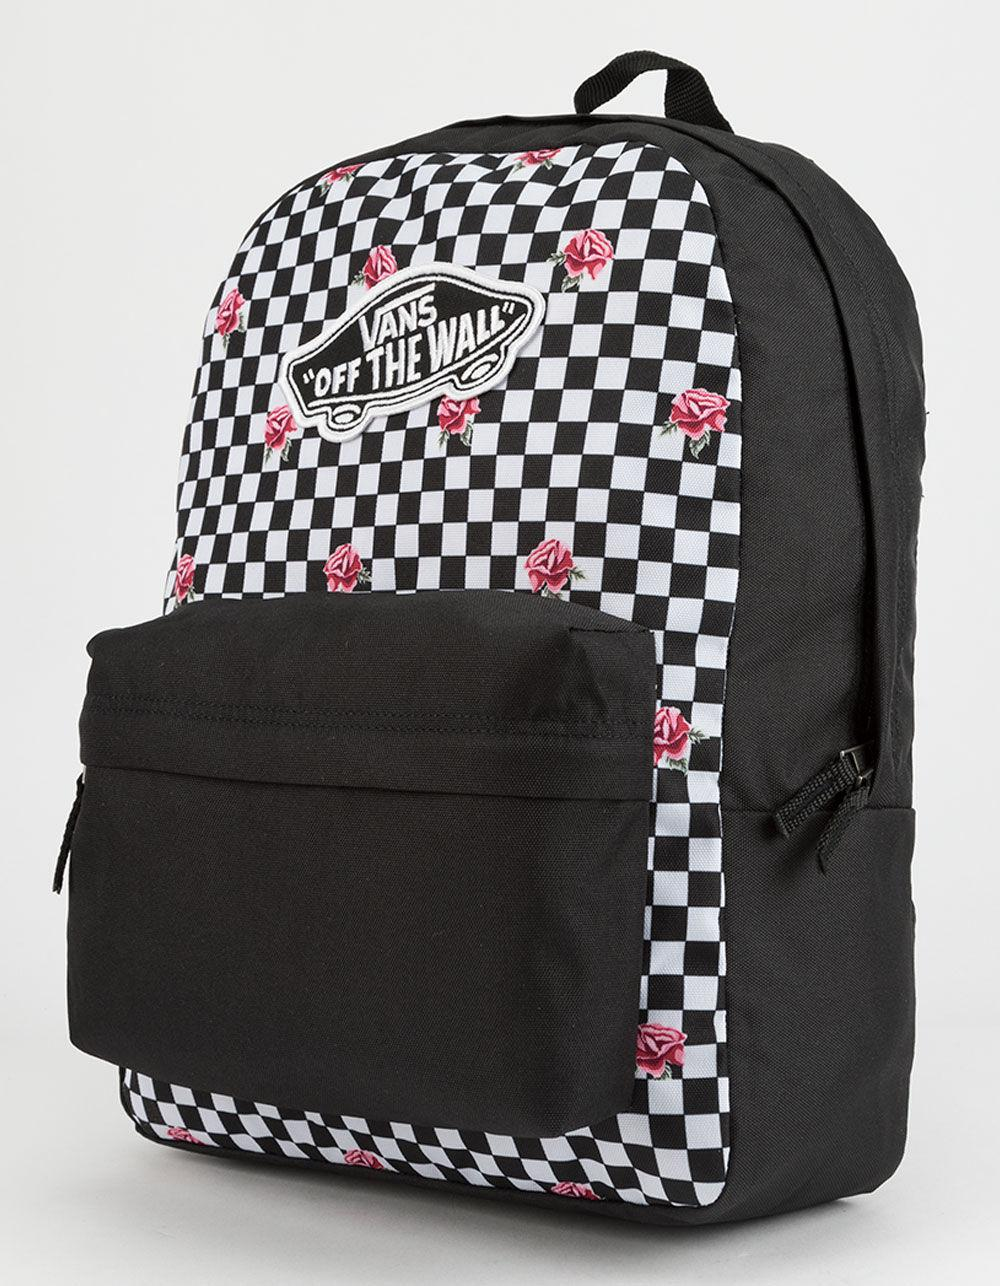 3bcce8b231b Vans - Black Realm Rose Checkerboard Backpack - Lyst. View fullscreen